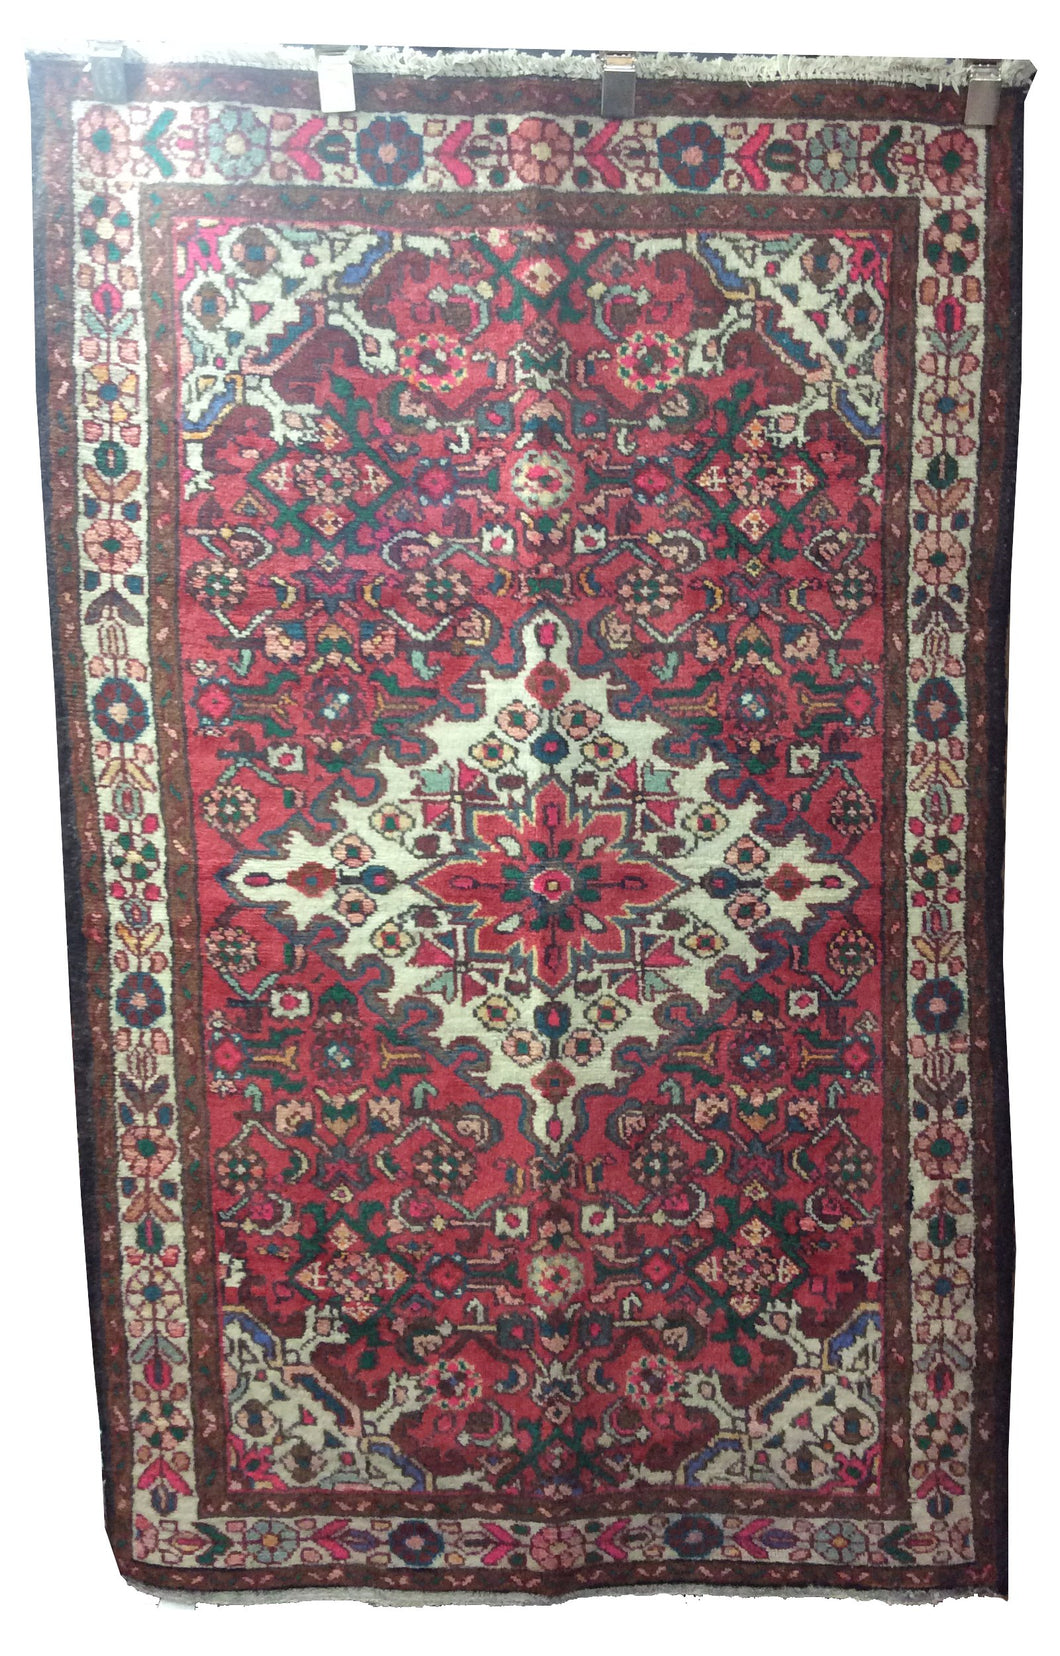 Tafresh Tribal Rust Red Hand-Knotted Rug